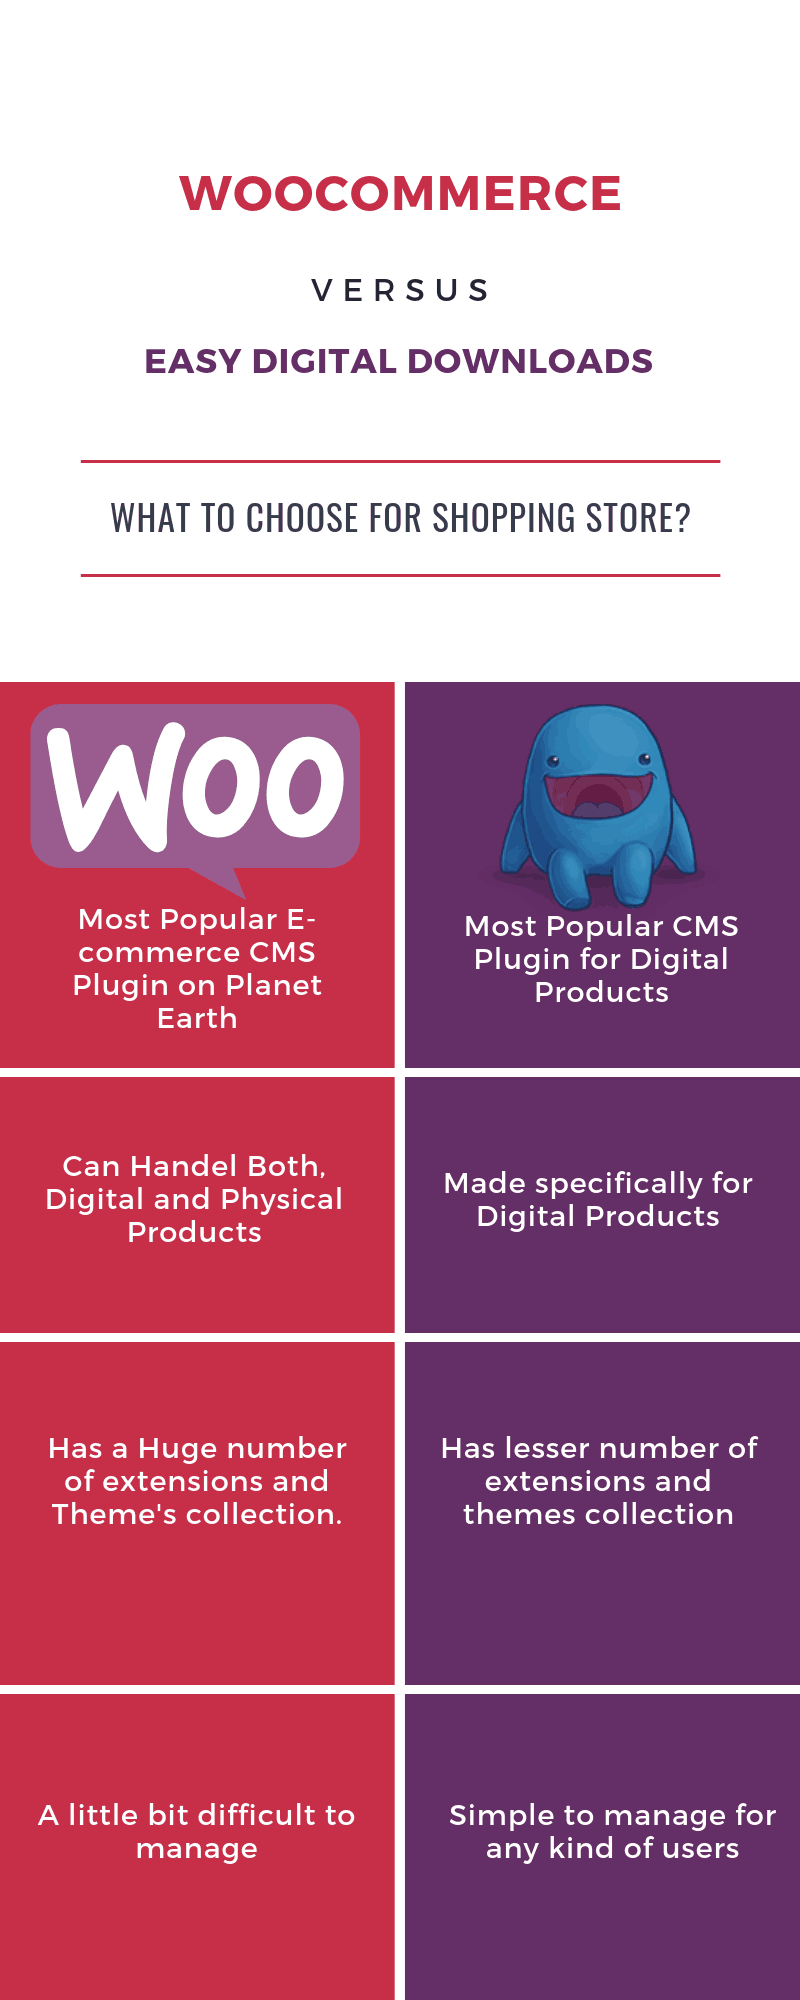 WooCommerce vs Easy Digital Downloads - Infographic